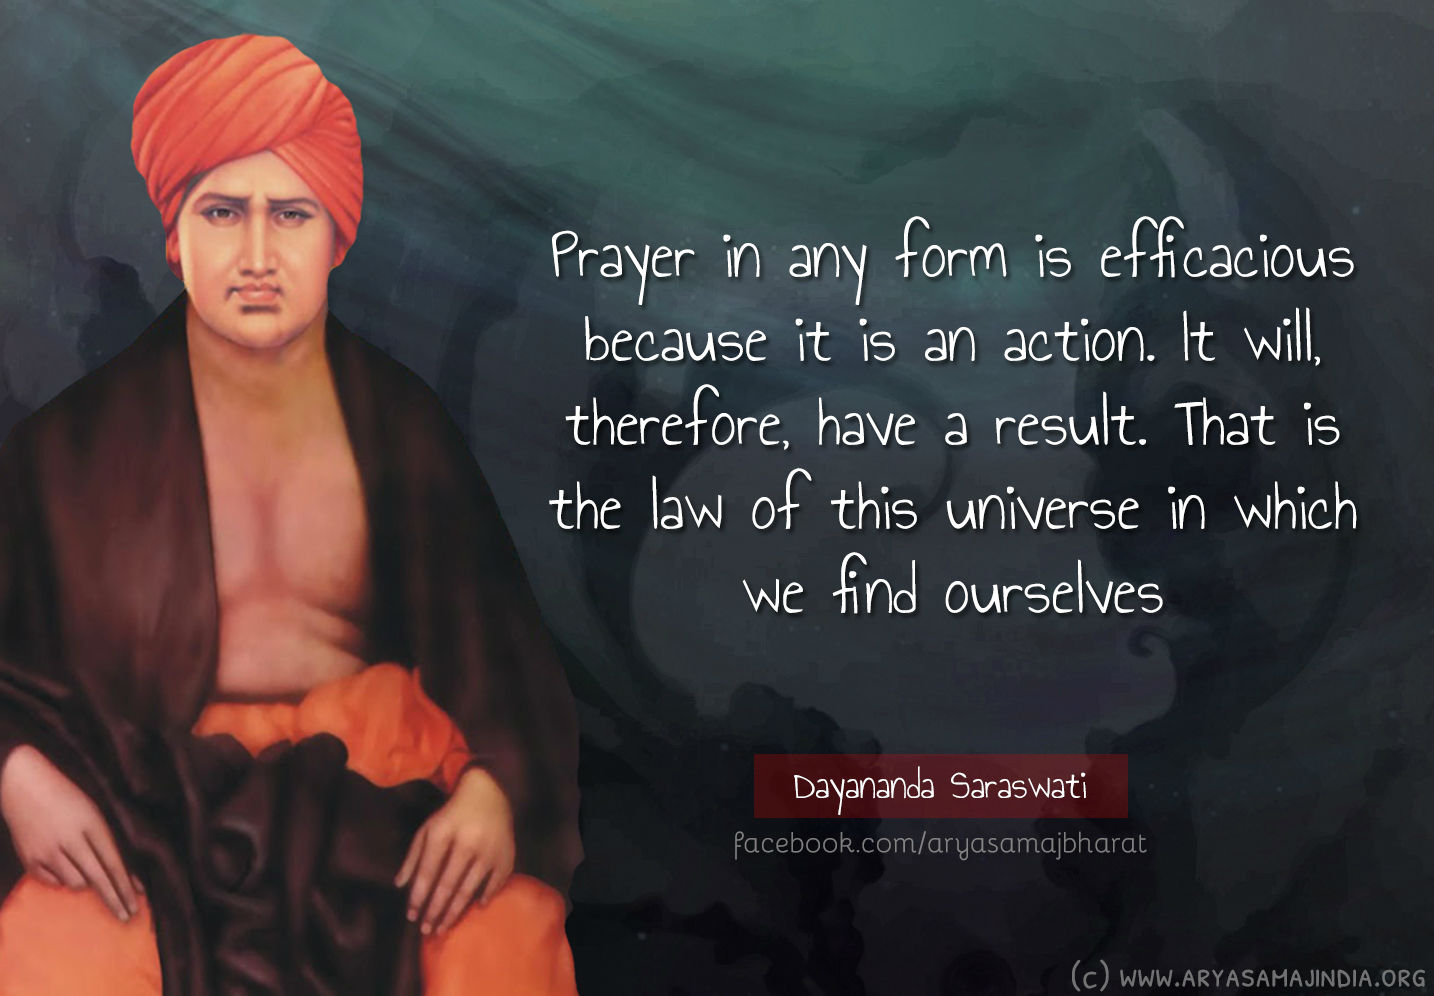 Prayer in any form is efficacious because it is an action. It will, therefore, have a result. That is the law of this universe in which we find ourselves